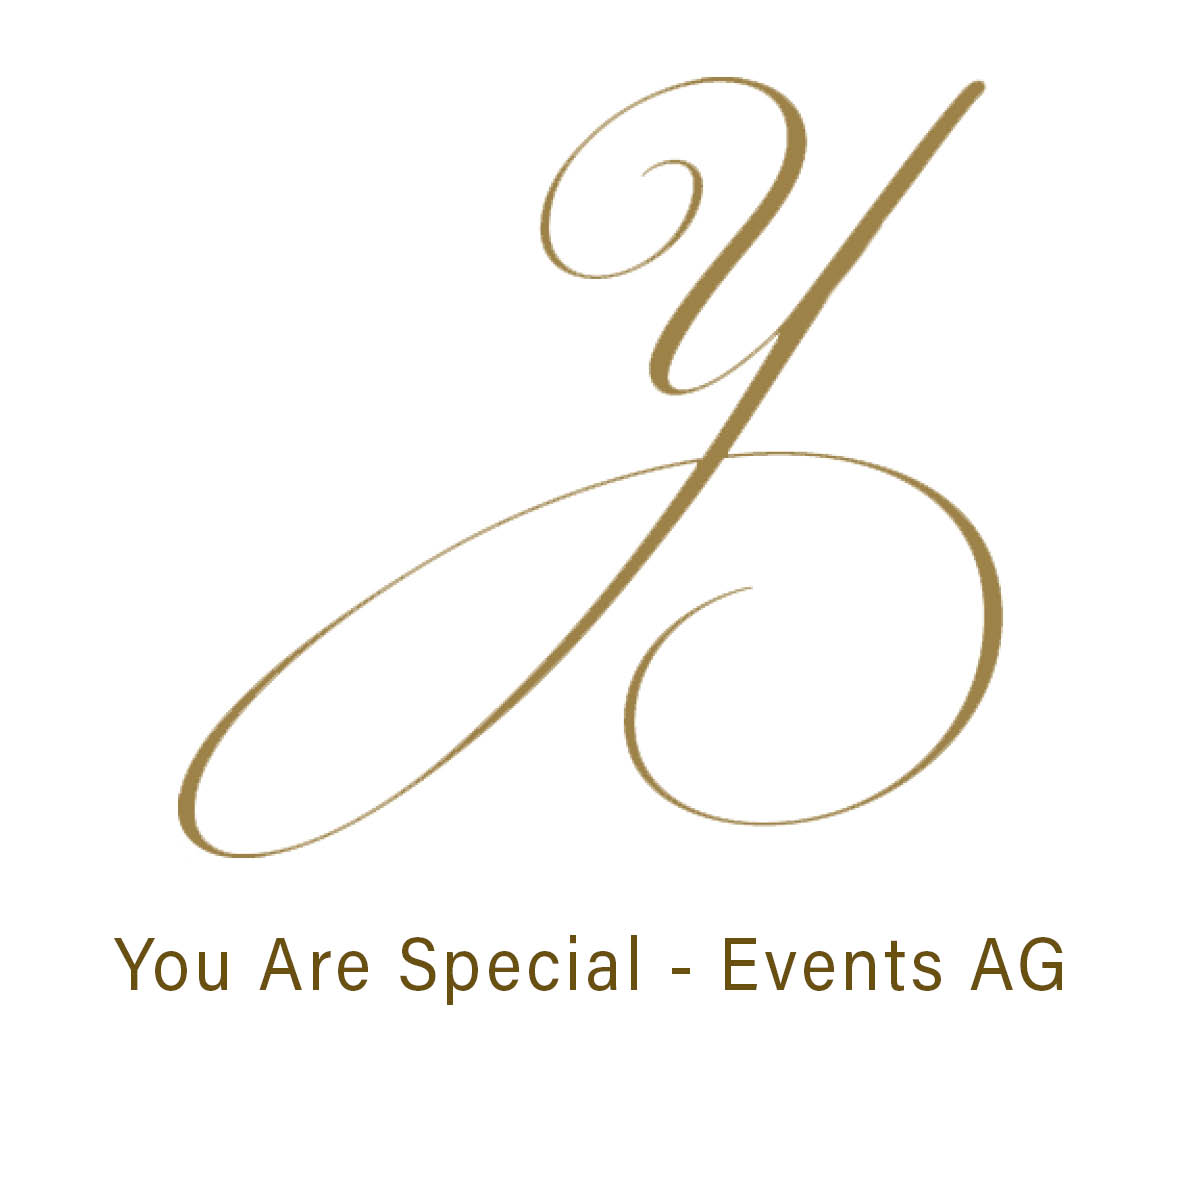 You Are Special - Events AG